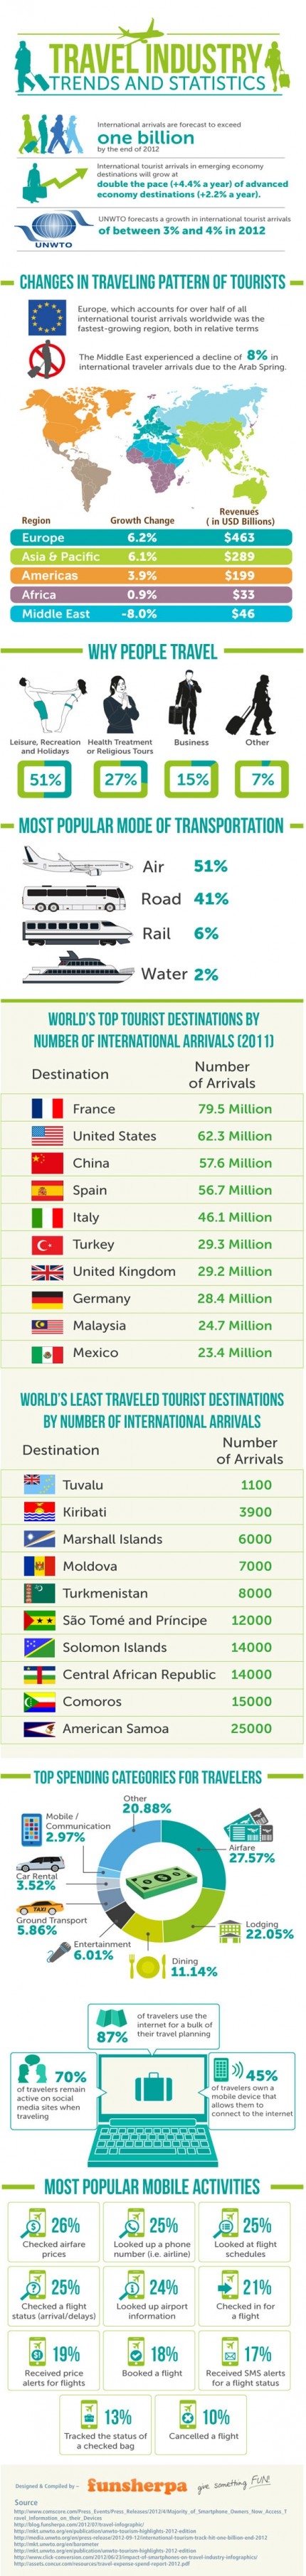 Travel Industry Trends and Statistics [Infographic]